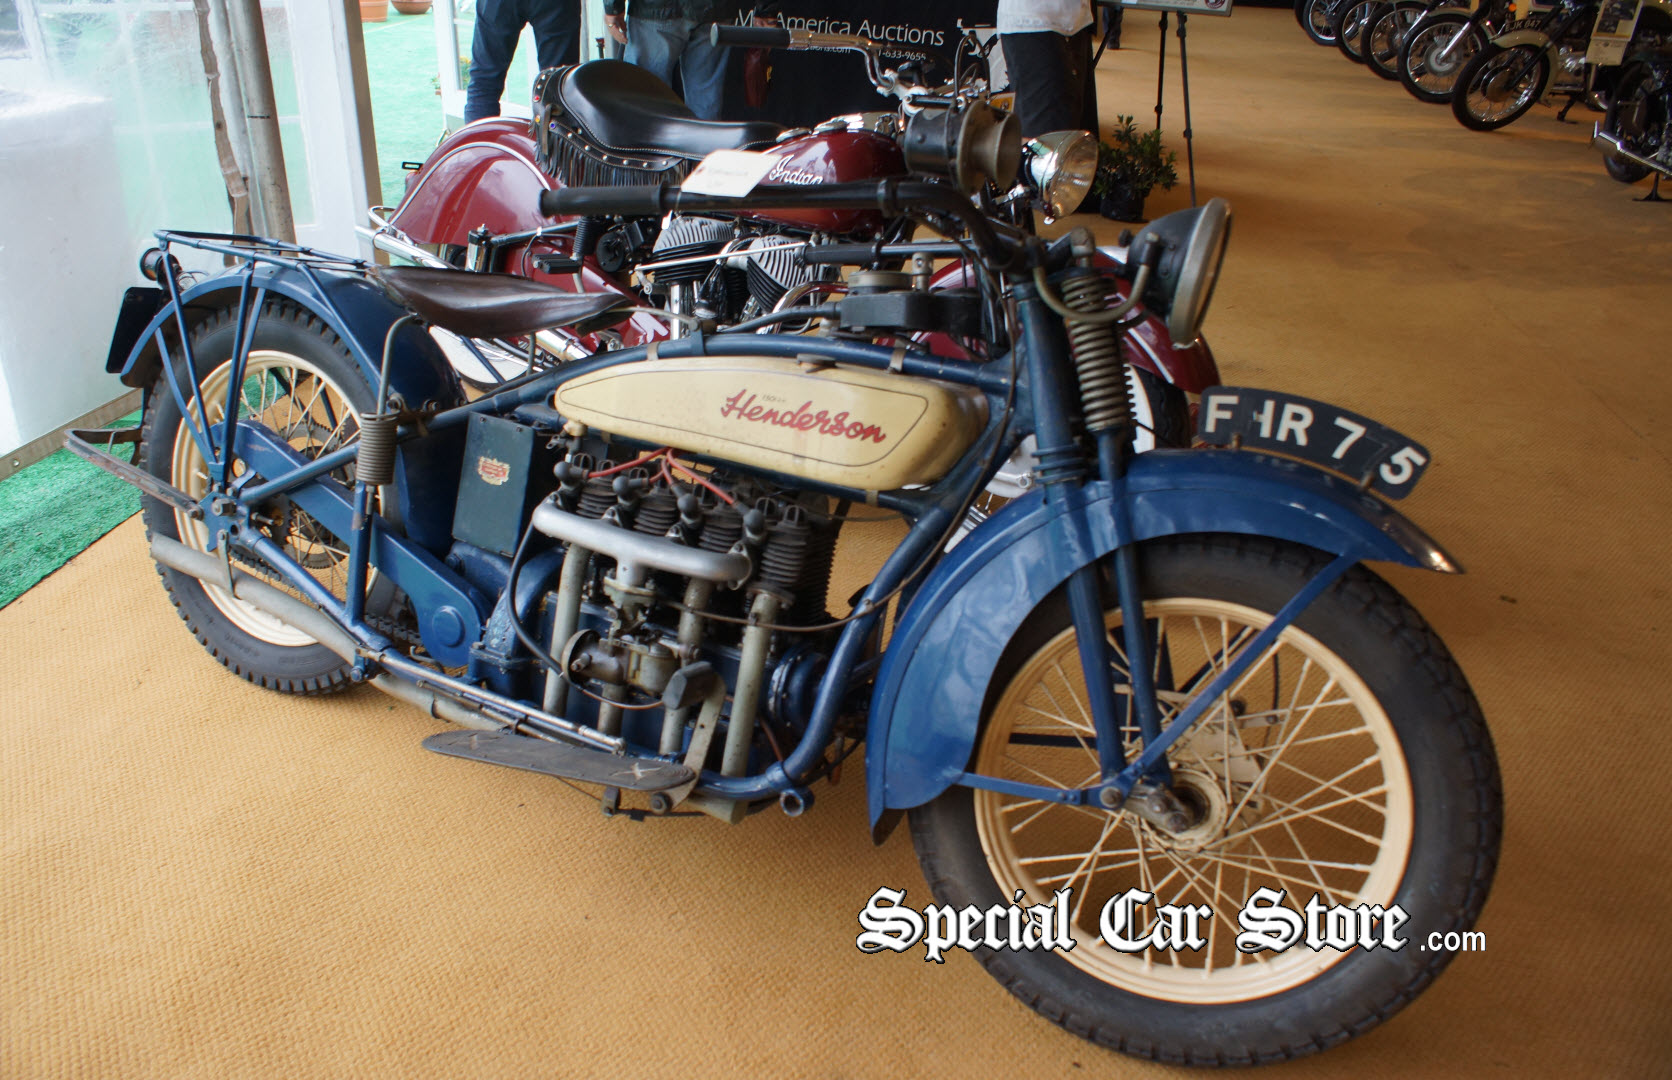 Antique Motorcycle Auction